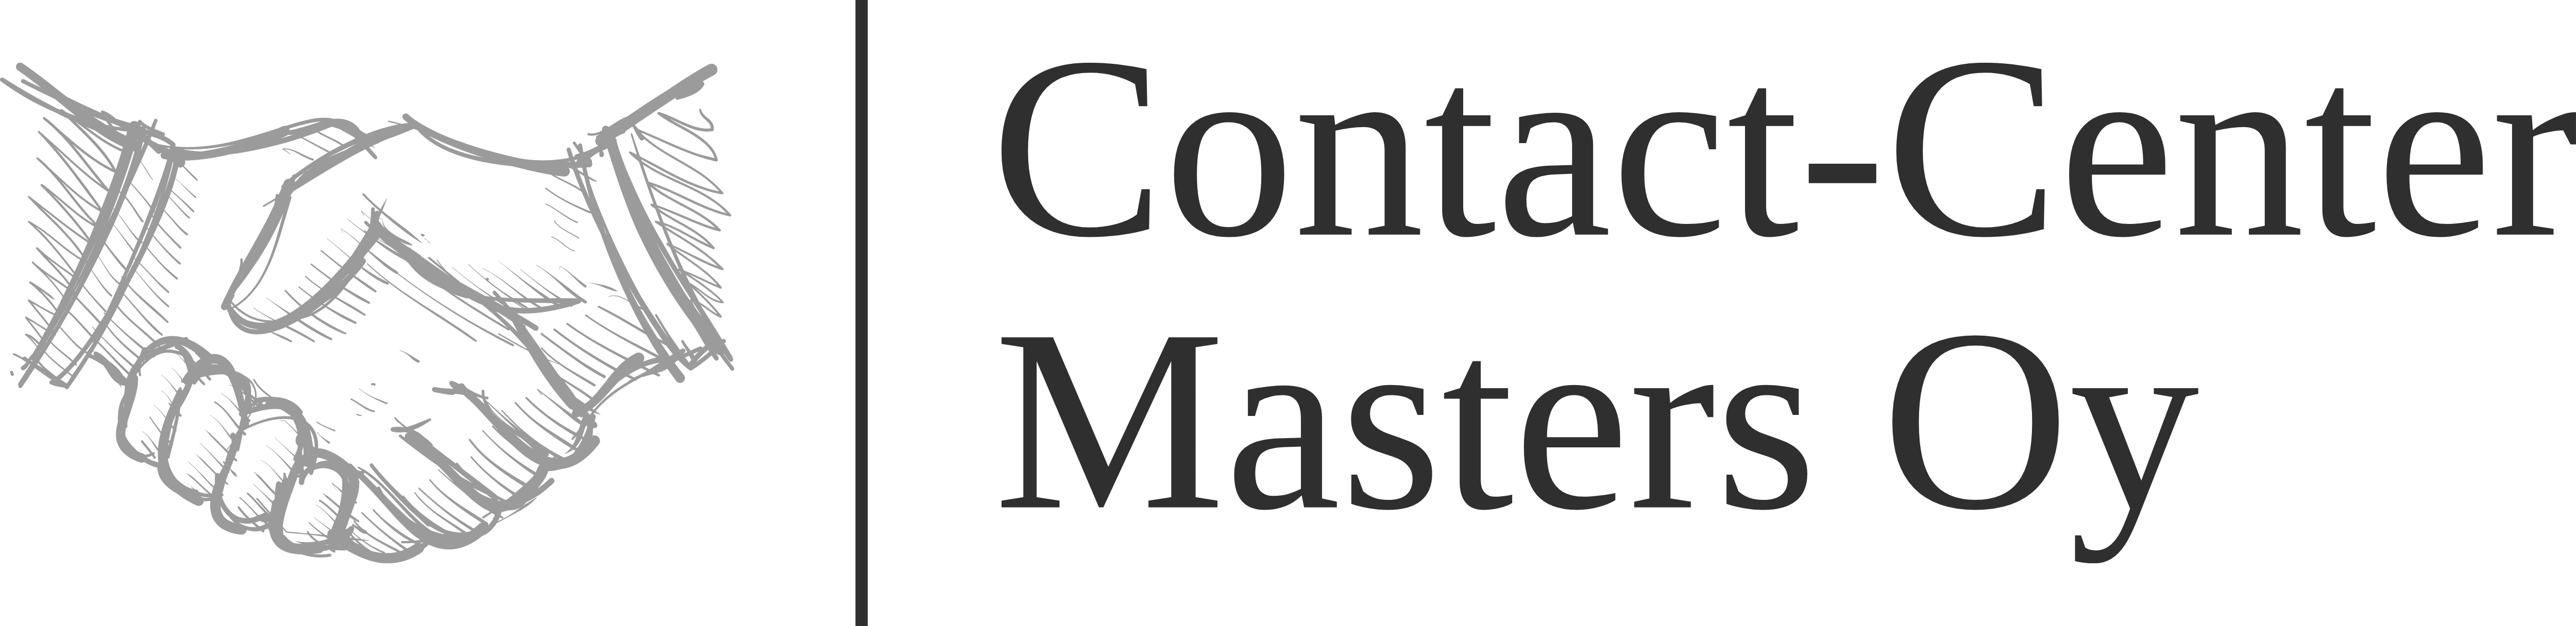 Contact-Center Masters Oy